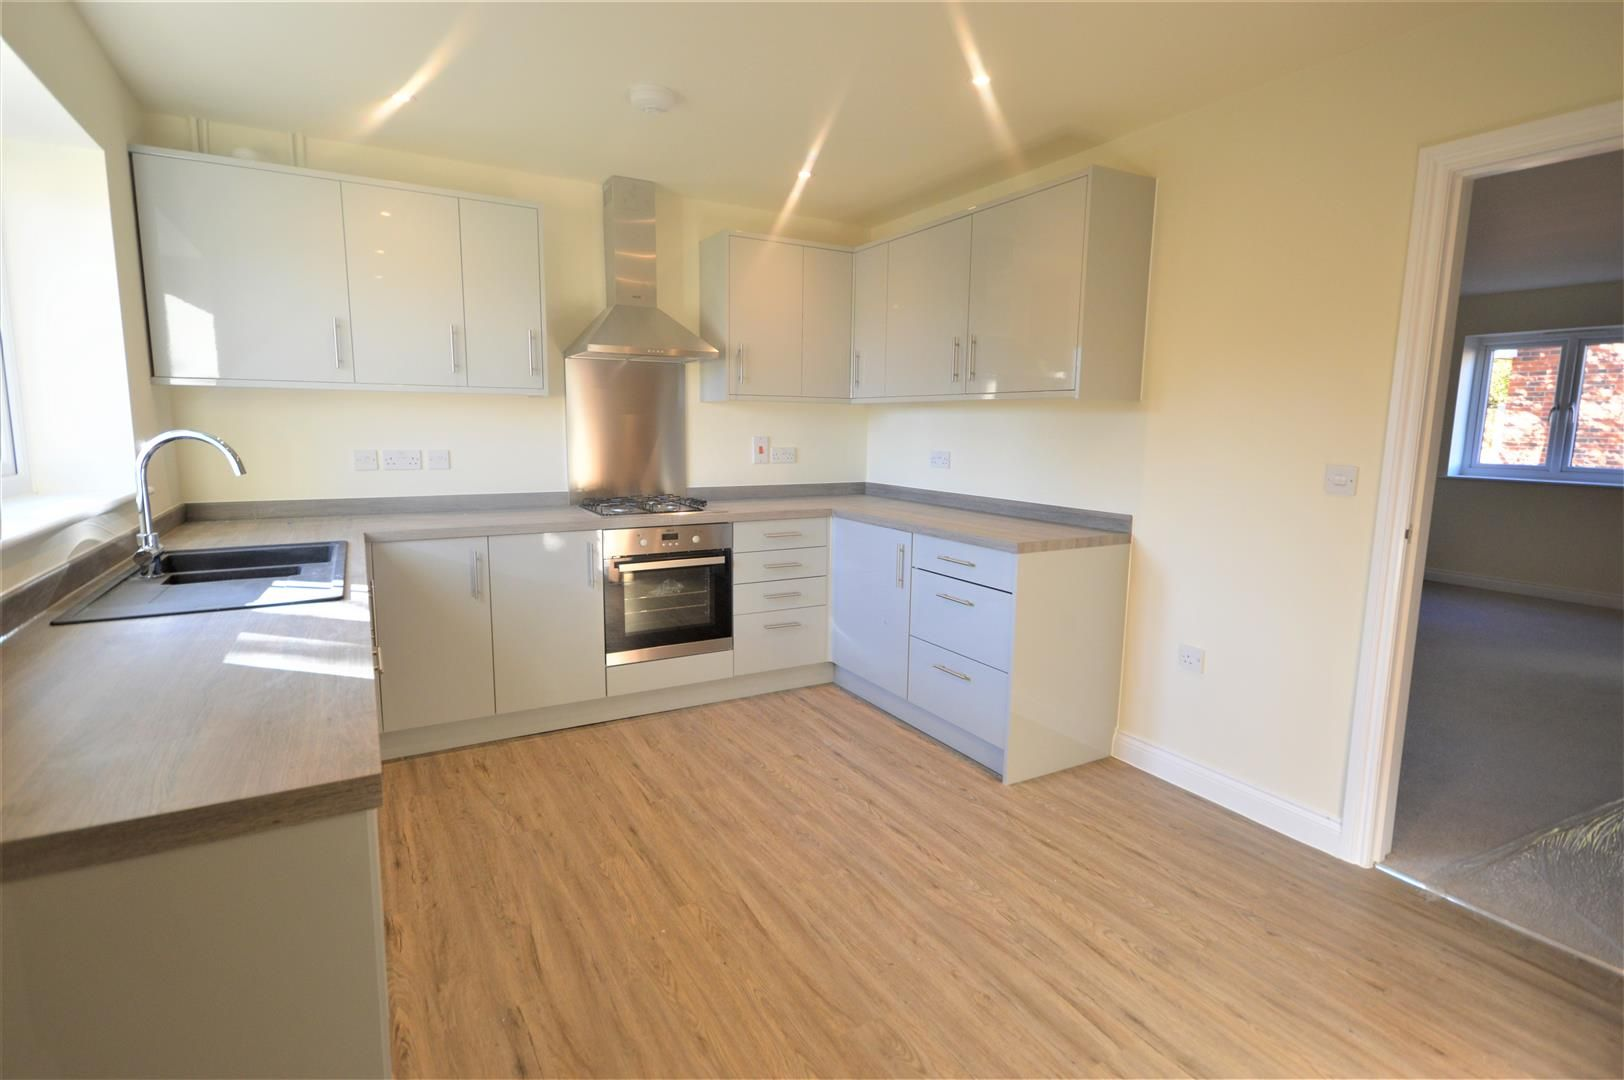 3 bed semi-detached for sale in Kingsland  - Property Image 3